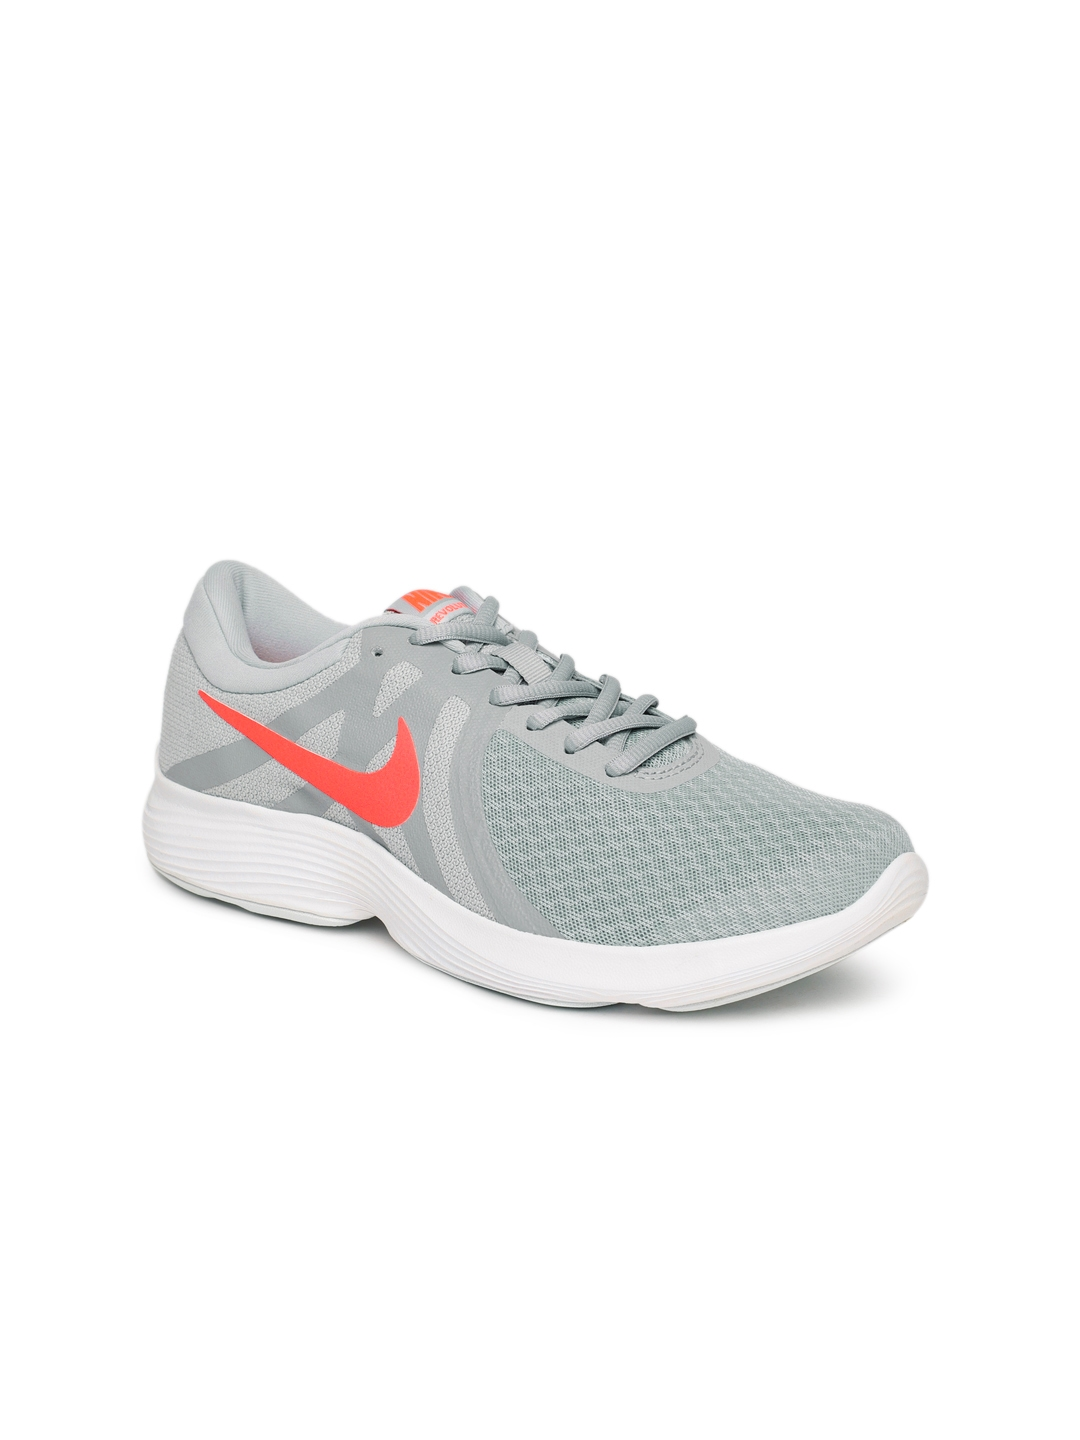 495af5002abc3 Buy Nike Women Grey Solid REVOLUTION 4 Running Shoes - Sports Shoes ...